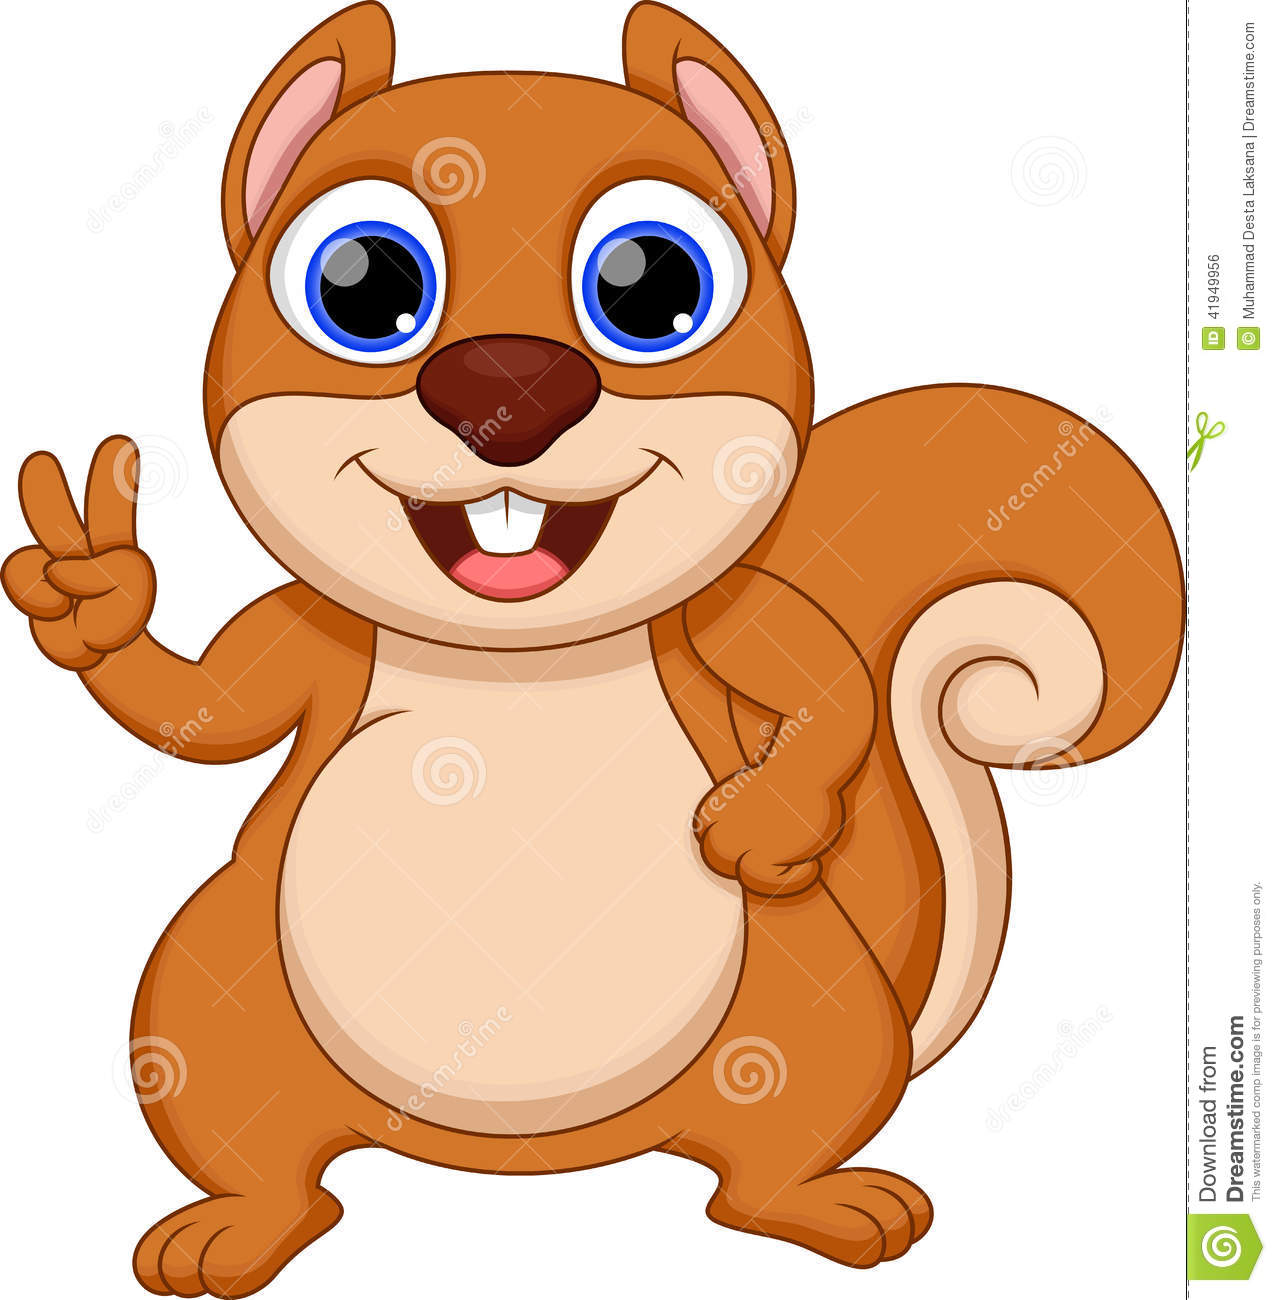 Animated Squirrel Clipart - Clipart Kid